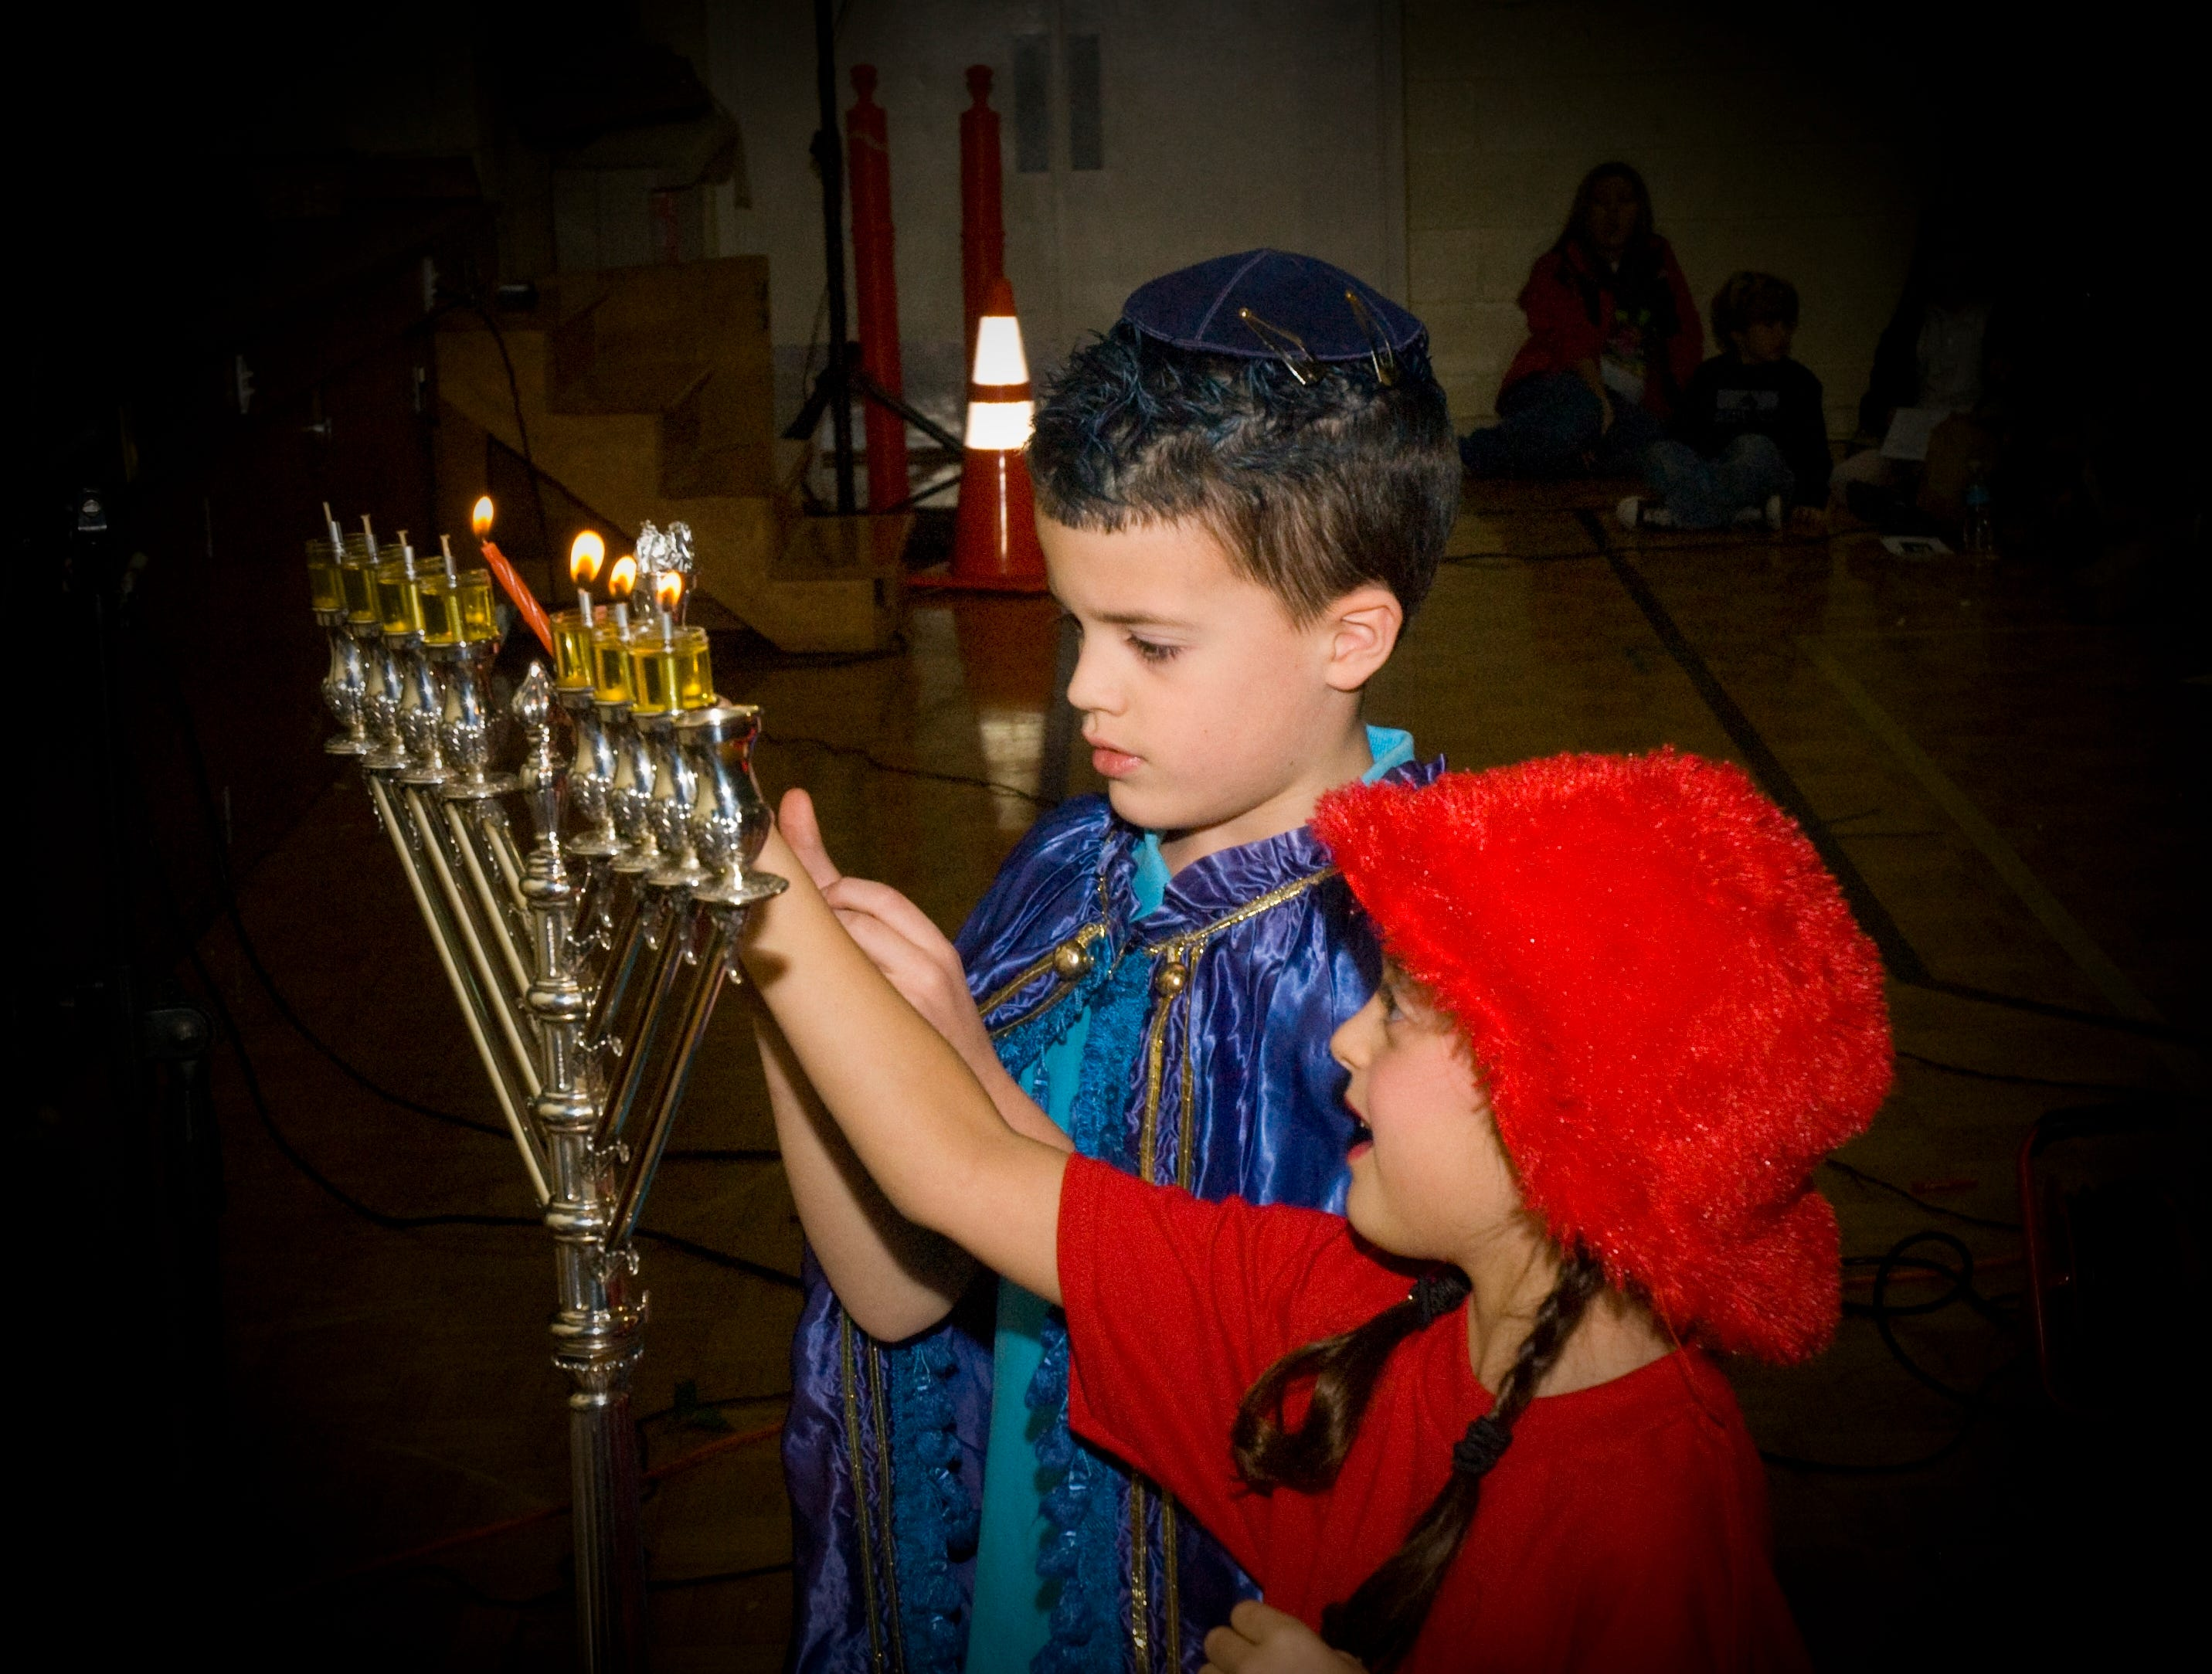 Lighting the Menorah at Knoxville Jewish Day School are third-graders Jacob Hale and Yuval Koenig.